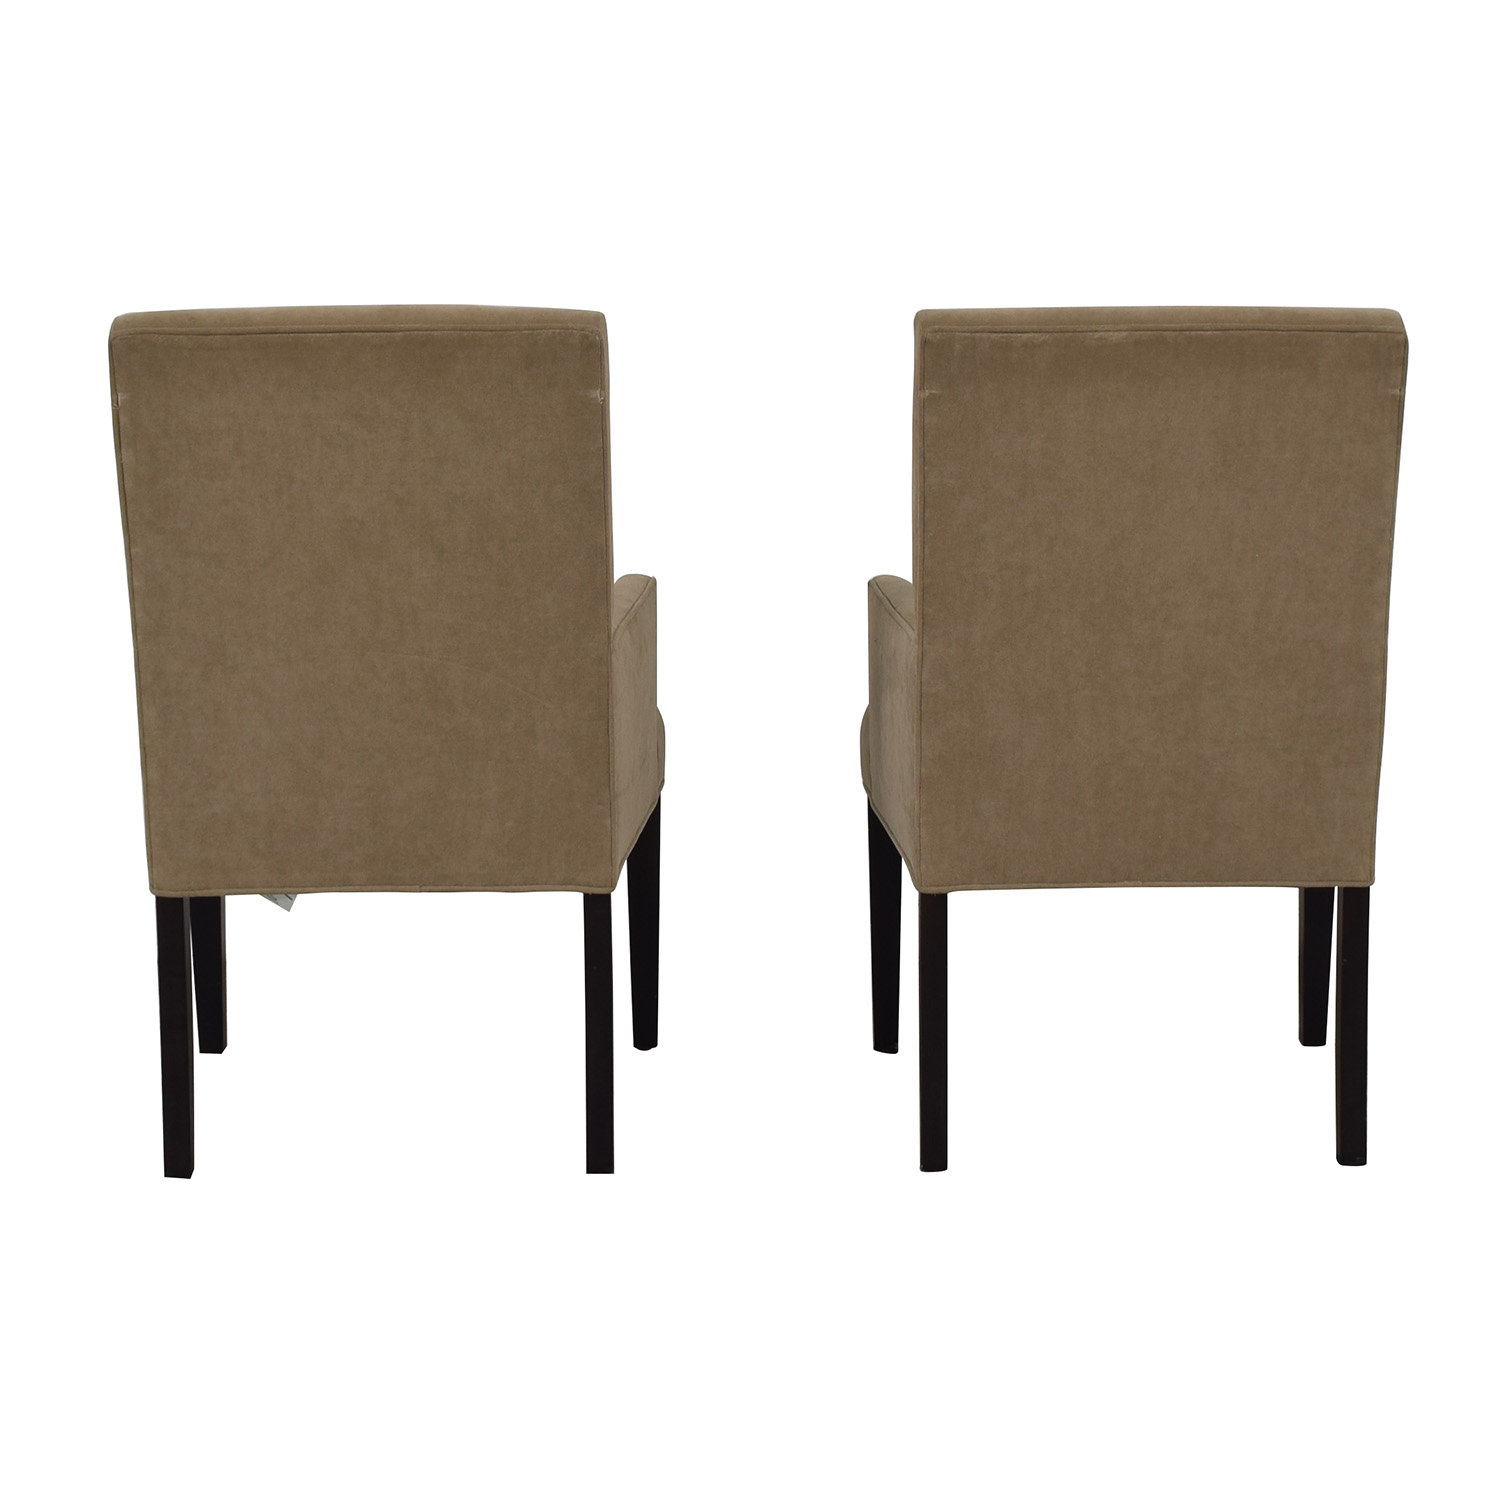 Crate & Barrel Tan Dining Chairs / Dining Chairs